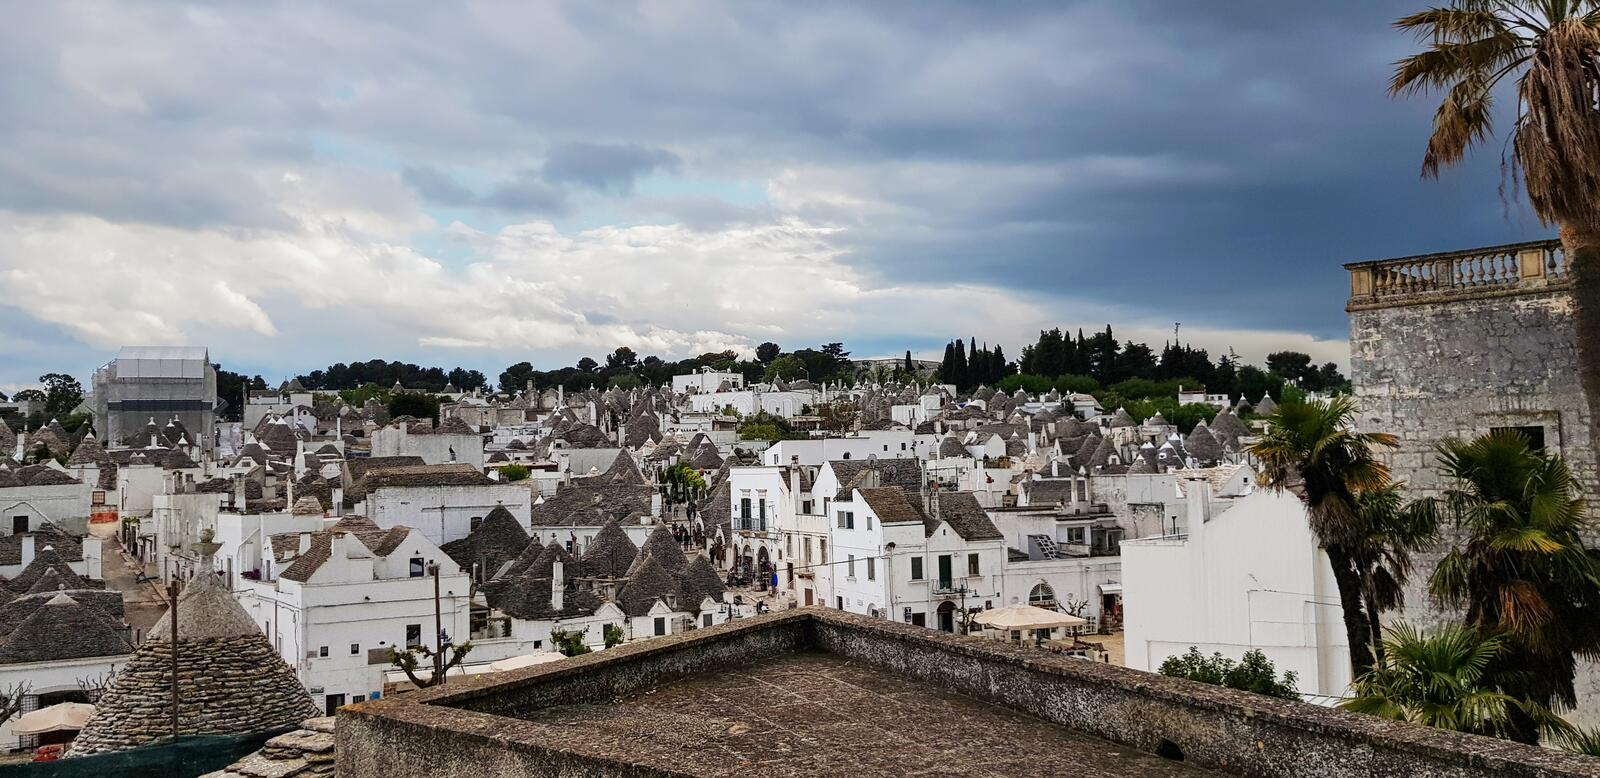 Beautiful town of Alberobello with trulli houses. It is an Italian town in the metropolitan city of Bari, in Puglia,  Italy.  stock photography